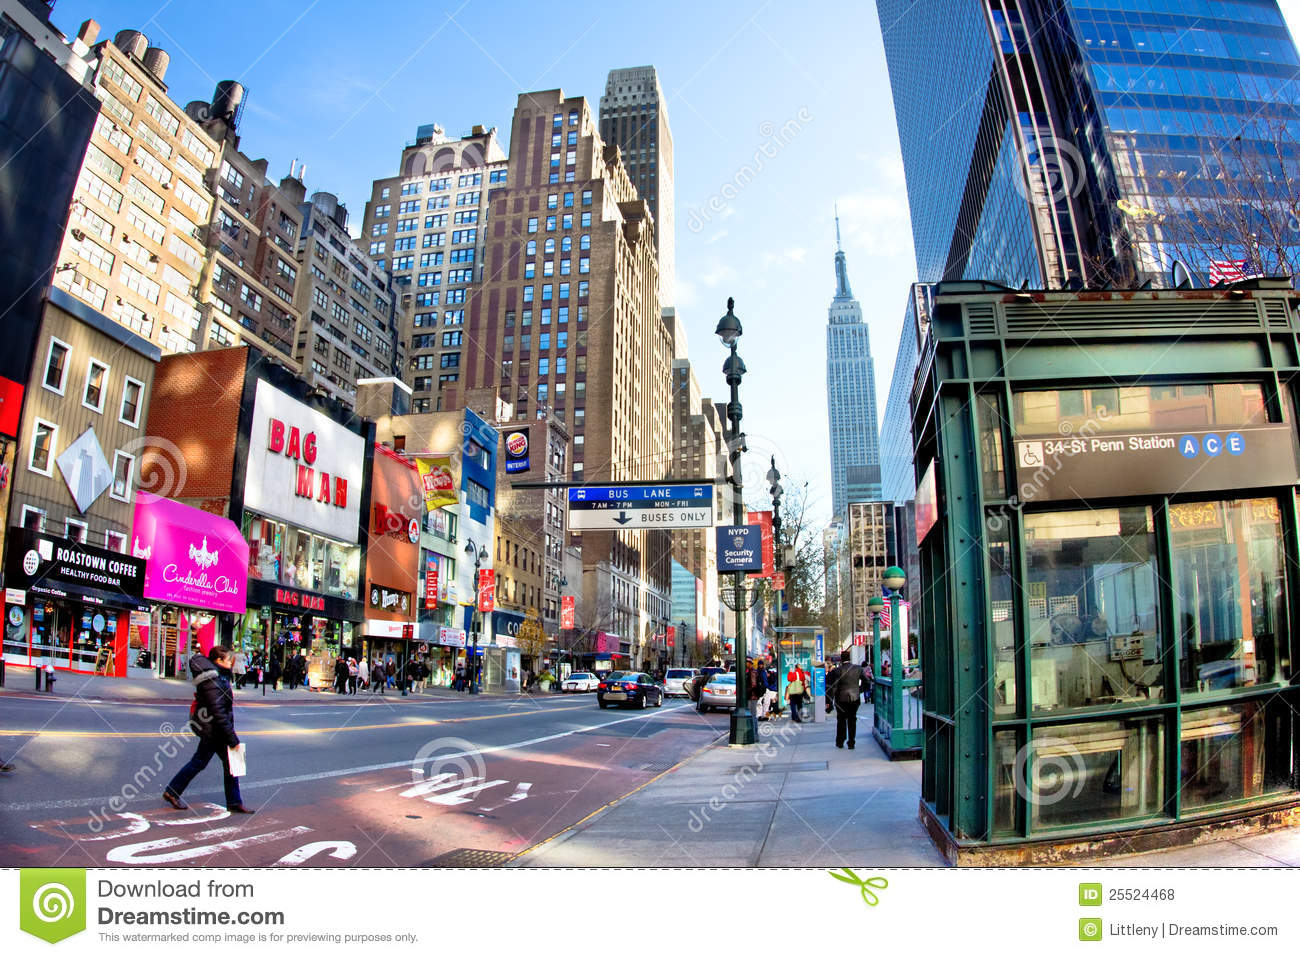 Sep 04, · 34th Street is one of New York City's main shopping areas with chain stores lining both dnxvvyut.ml the home of Macys Herald Square, which will always be a party of reminding us of the Miracle on 34th Street.4/4(51).